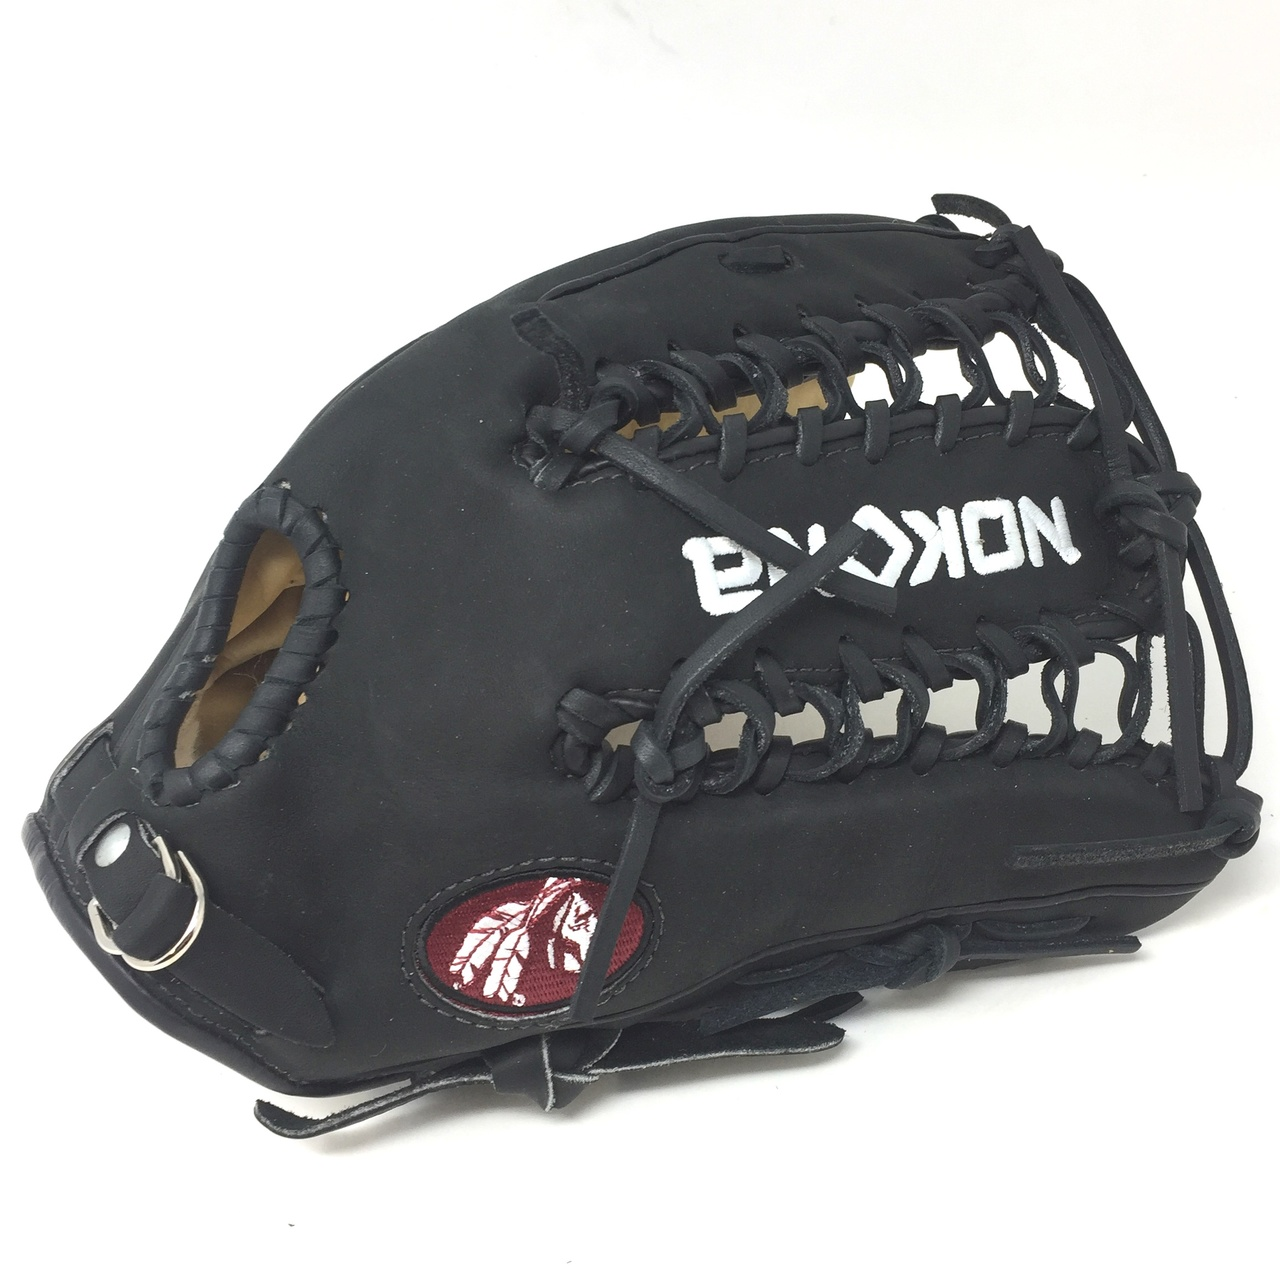 nokona-bison-black-alpha-12-25-baseball-glove-s-7tb-right-hand-throw S-7TB-RightHandThrow  808808893325 Young Adult Glove made of American Bison and Supersoft Steerhide leather